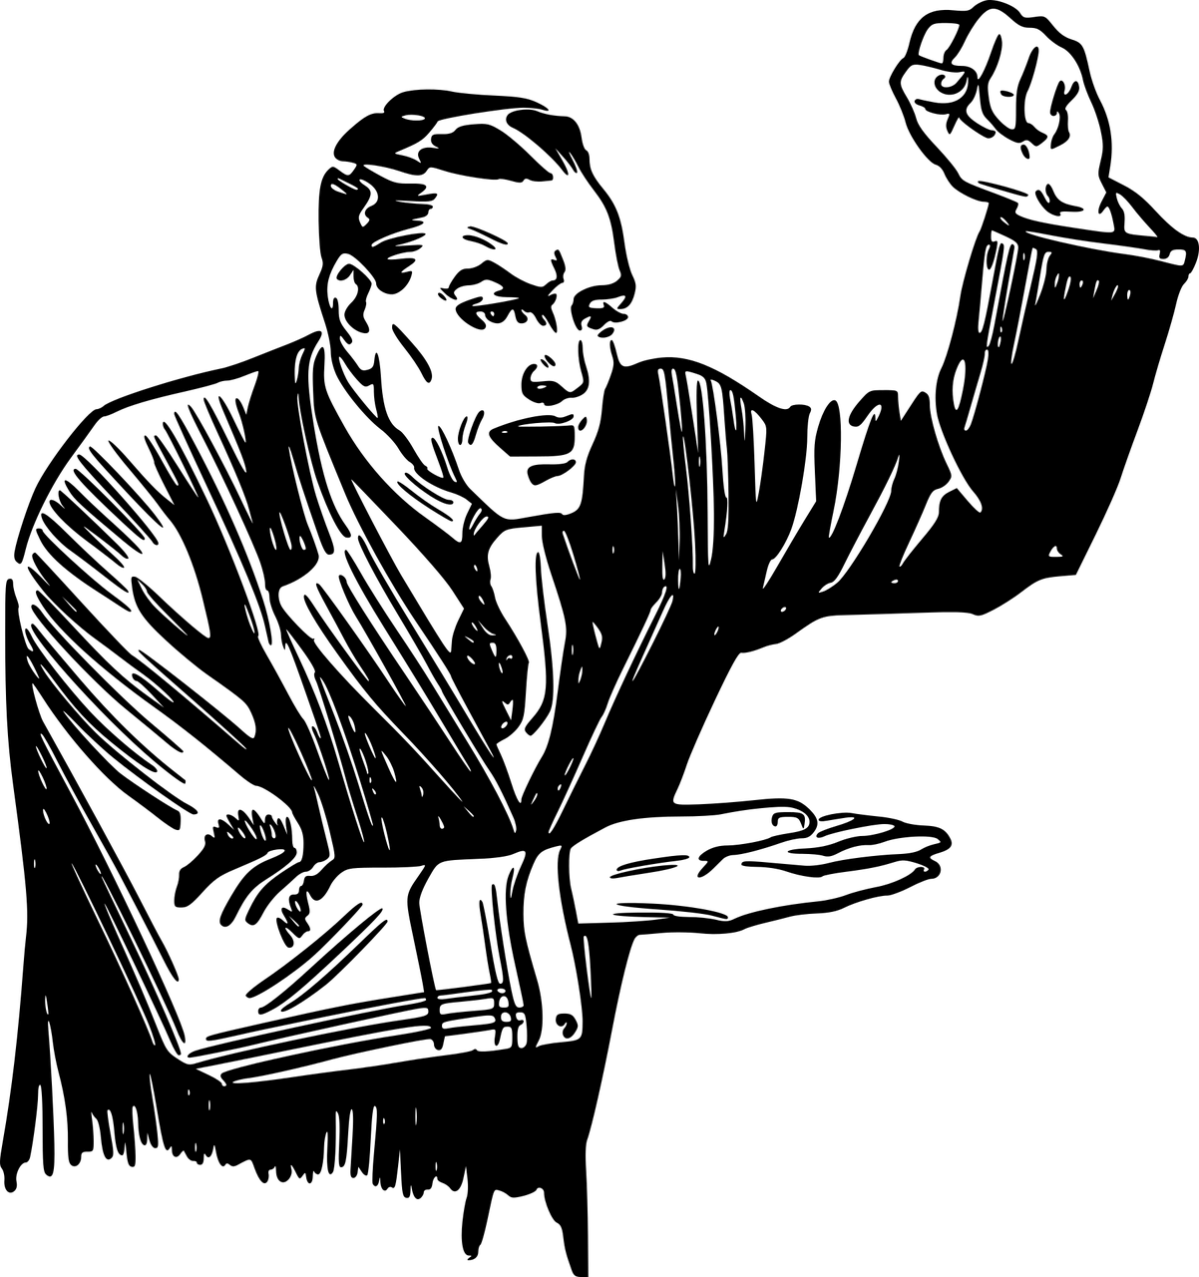 Clipart image of an angry man, public-speaking, shouting, ranting